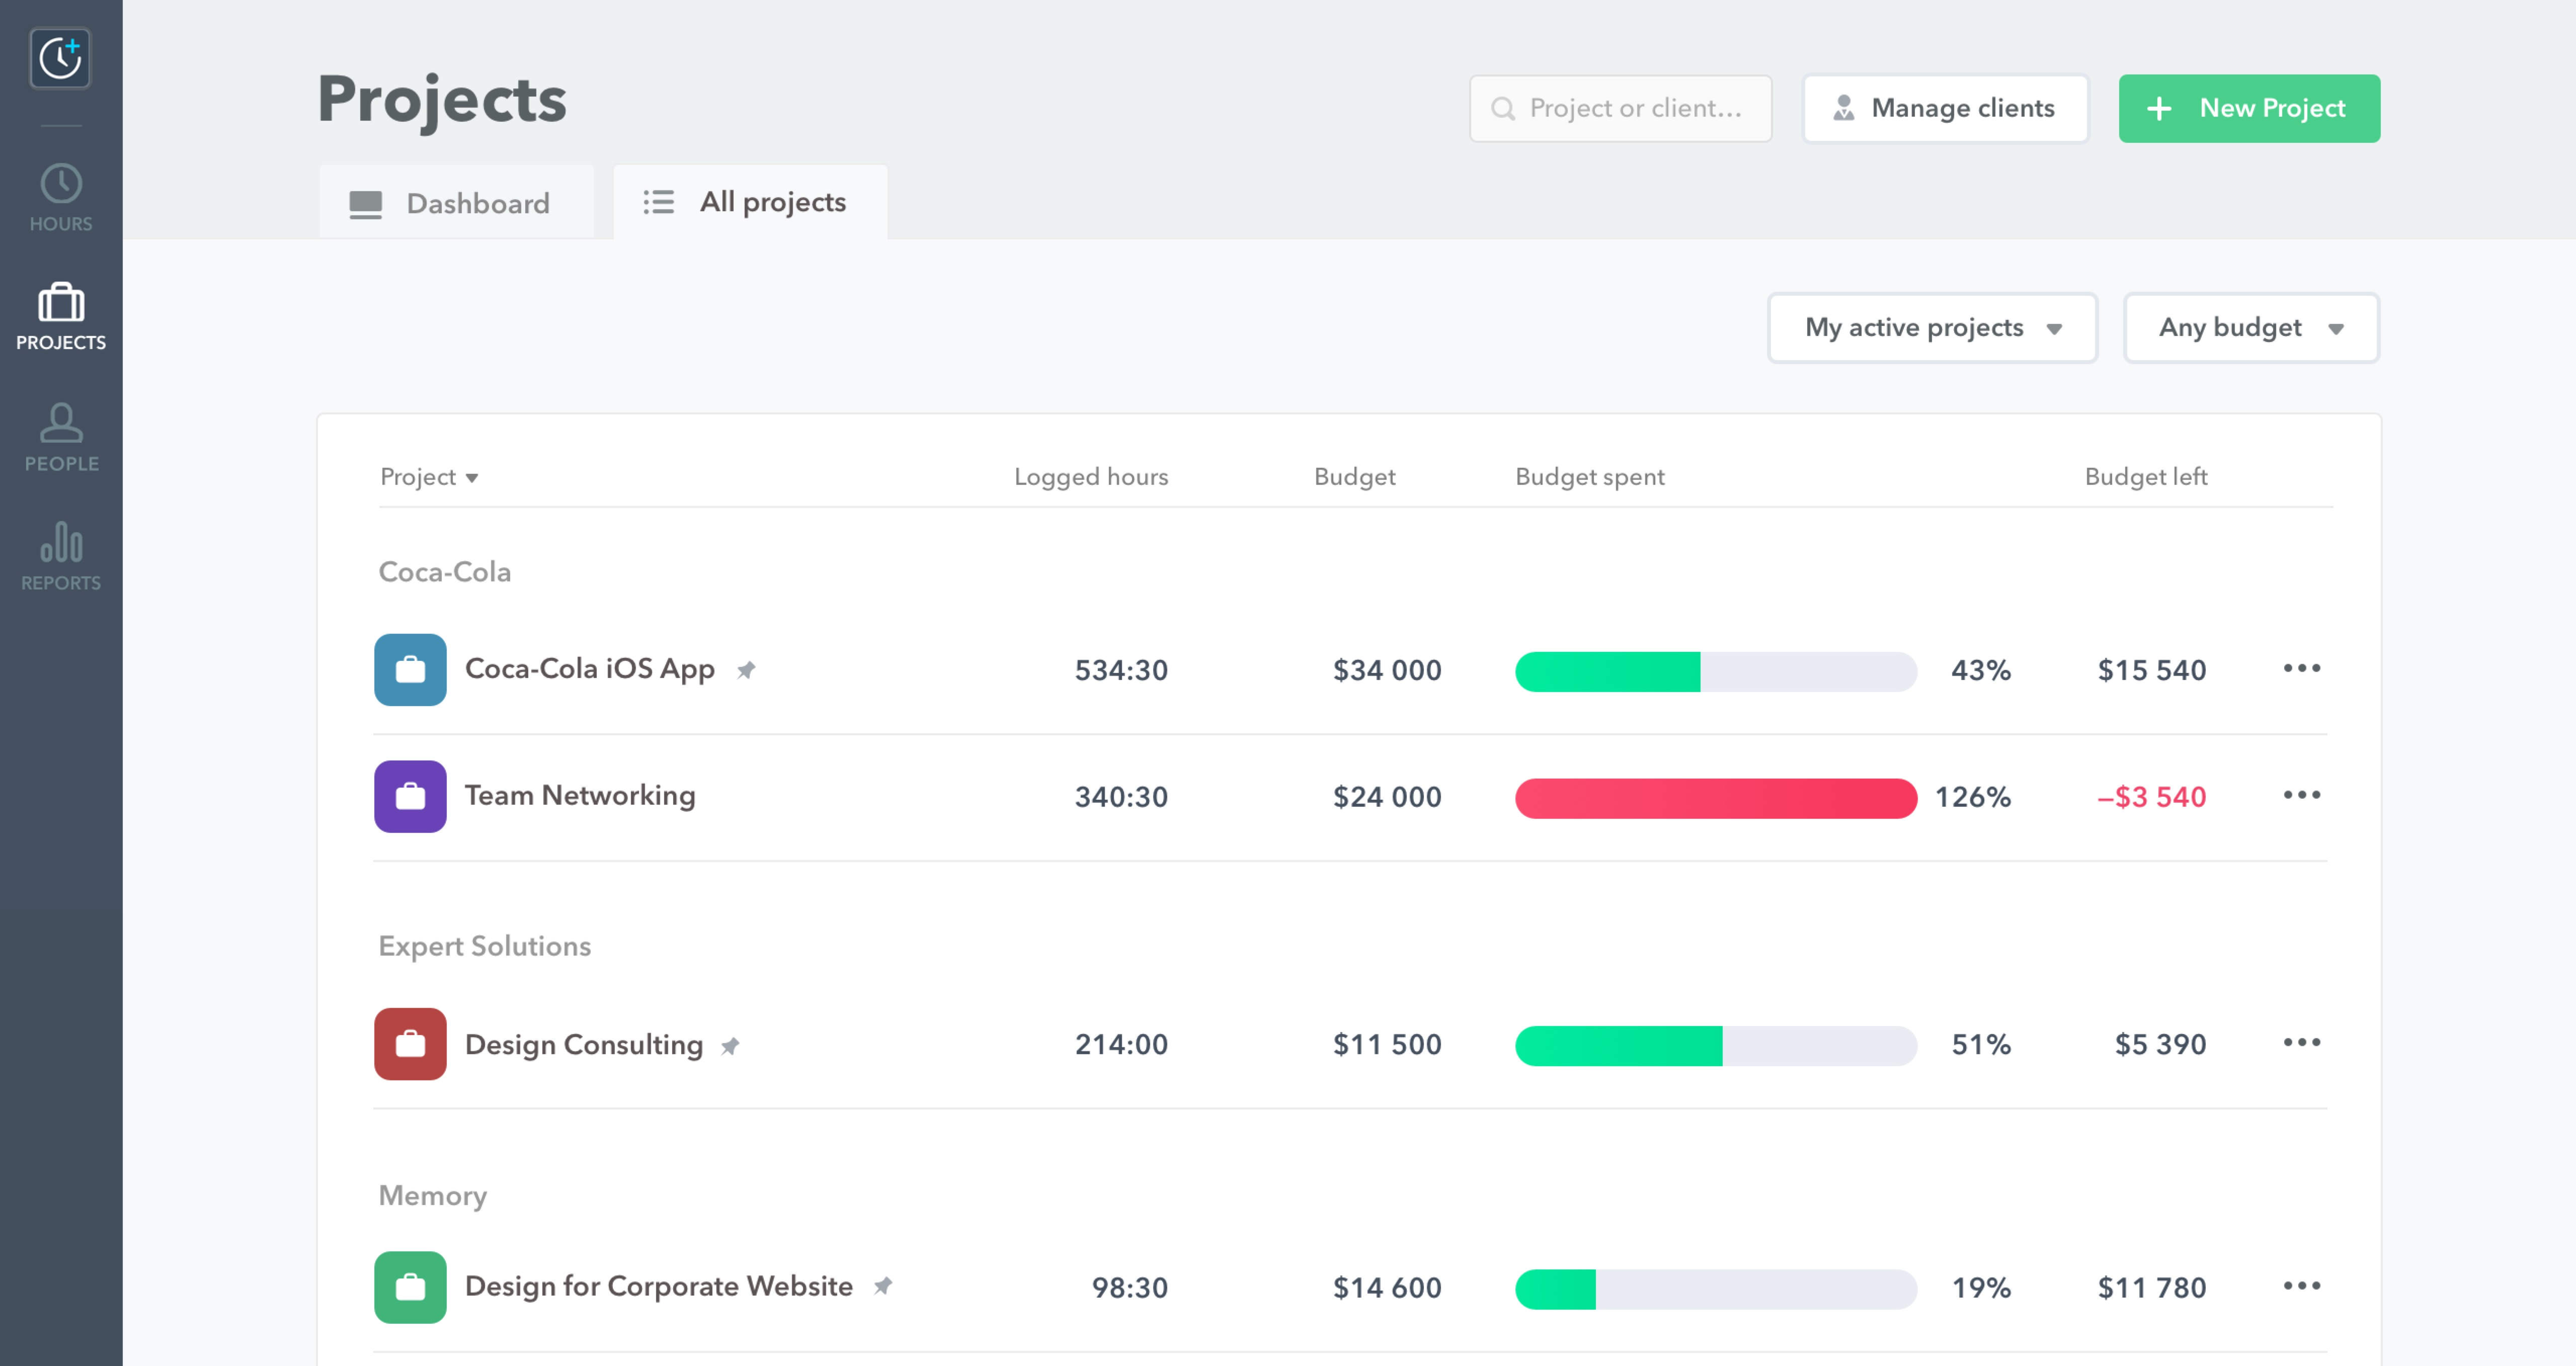 projects-dashboard@2x